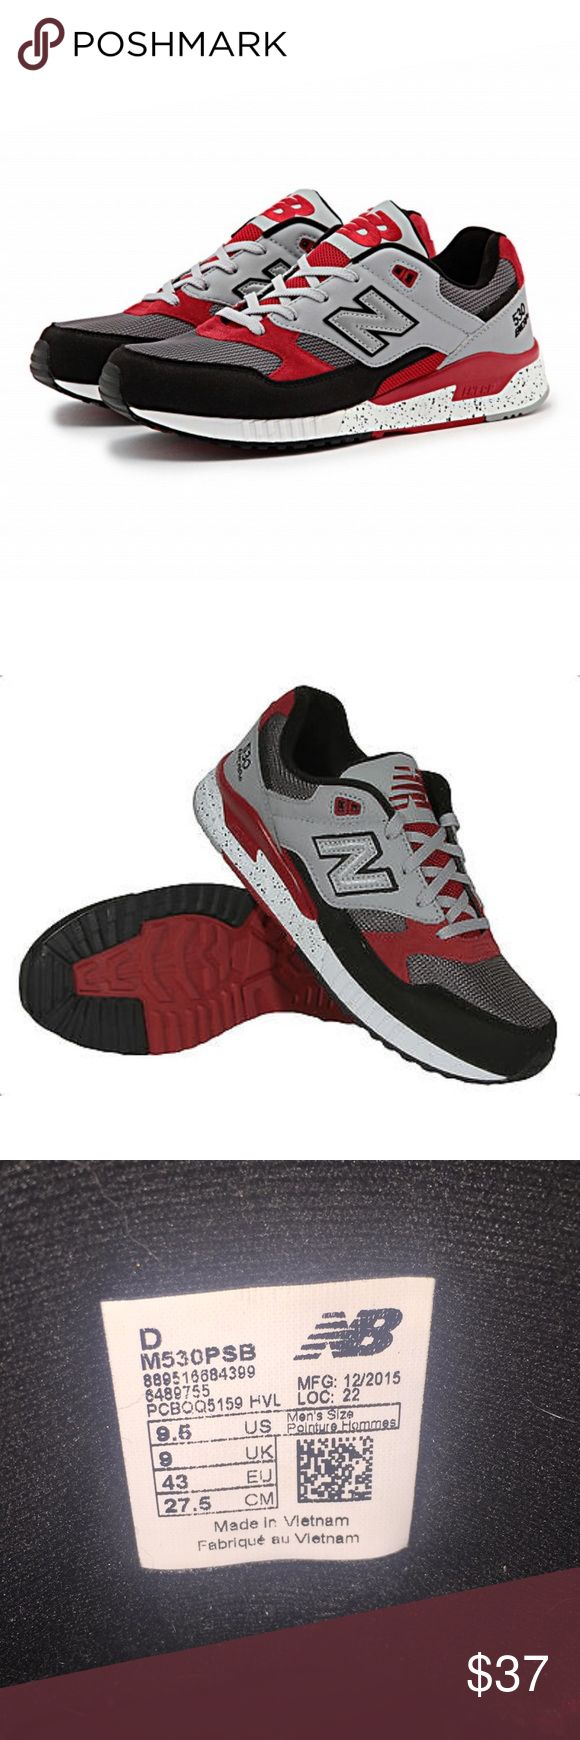 A MANS MUST HAVE -New Balance 530 ENCAP. Size 9.5 Synthetic and mesh upper provides lightweight comfort and support. ABZORB® cushioning in the heel and the ENCAP® midsole provides cushioning and support. Solid rubber outsole supplies traction and durability. New Balance Shoes Athletic Shoes